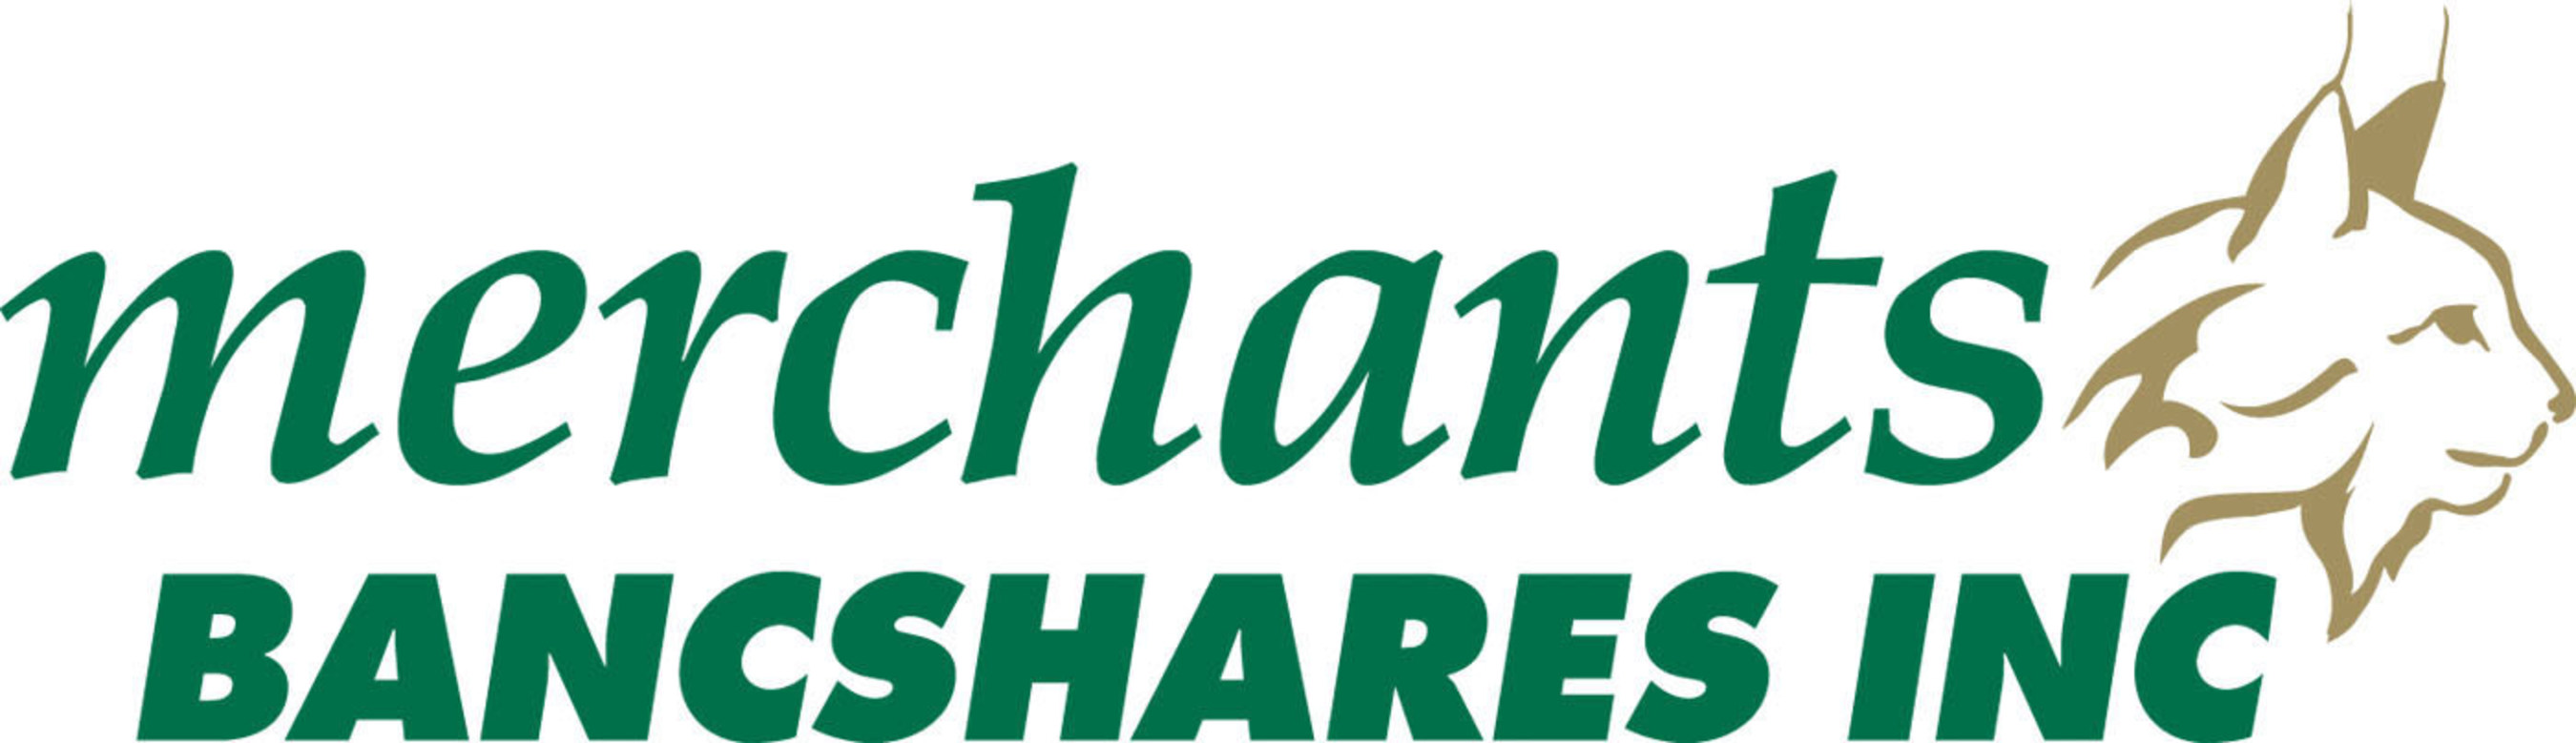 Merchants Bancshares, Inc. Announces Appointment of President and CEO